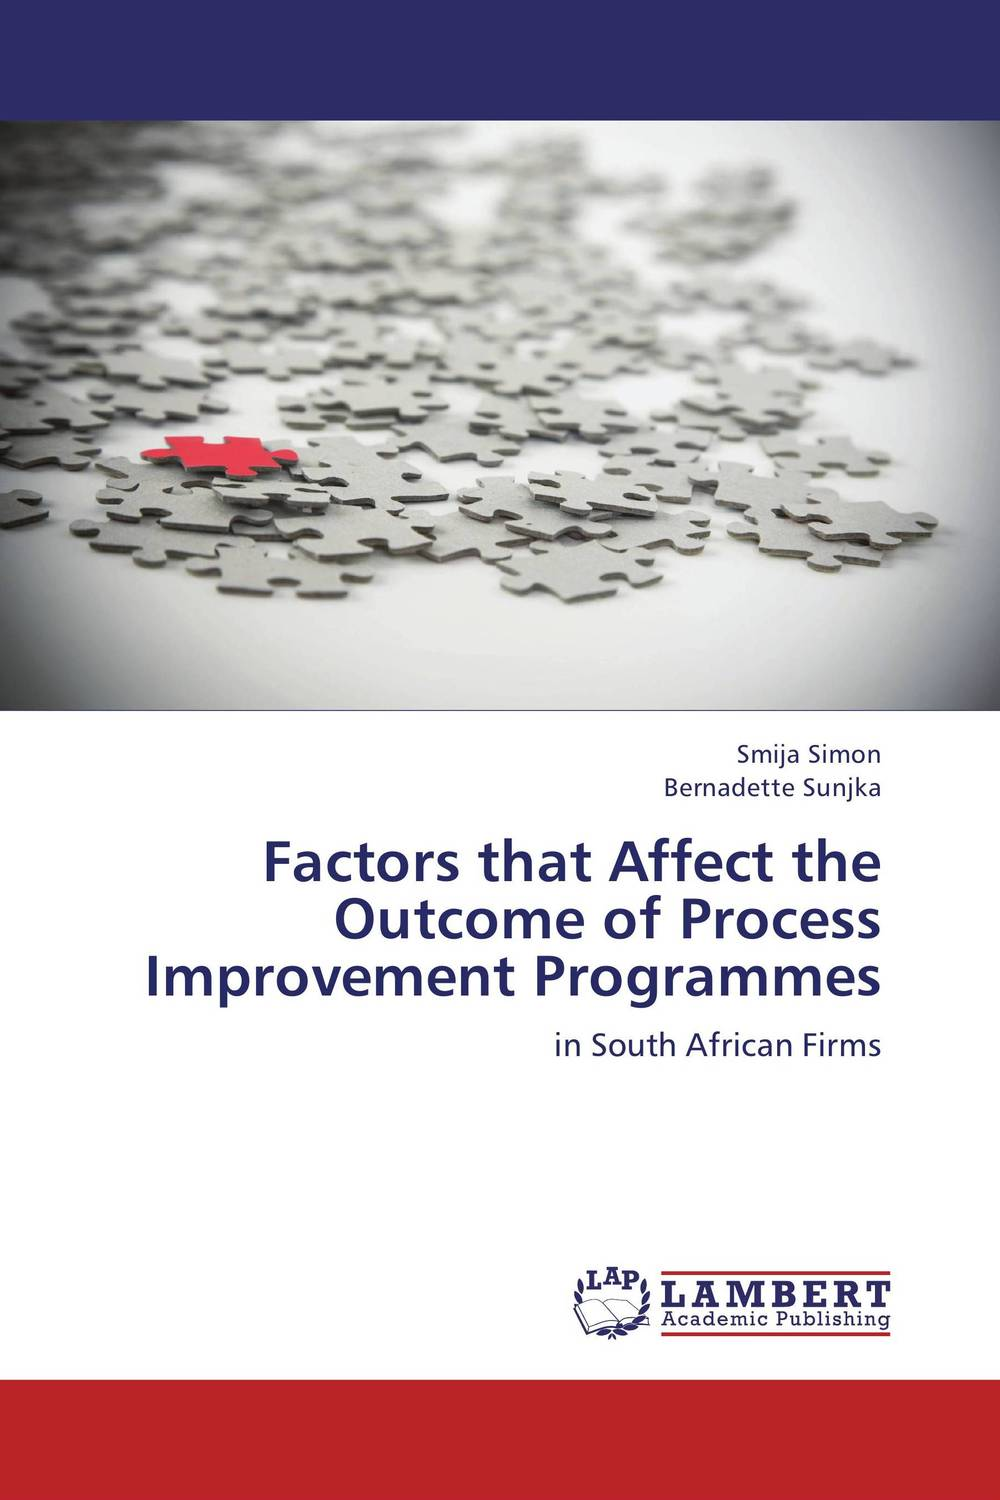 Factors that Affect the Outcome of Process Improvement Programmes ravindra kumar jain nod factors and nodulation process by rhizobia in cicer arietinum